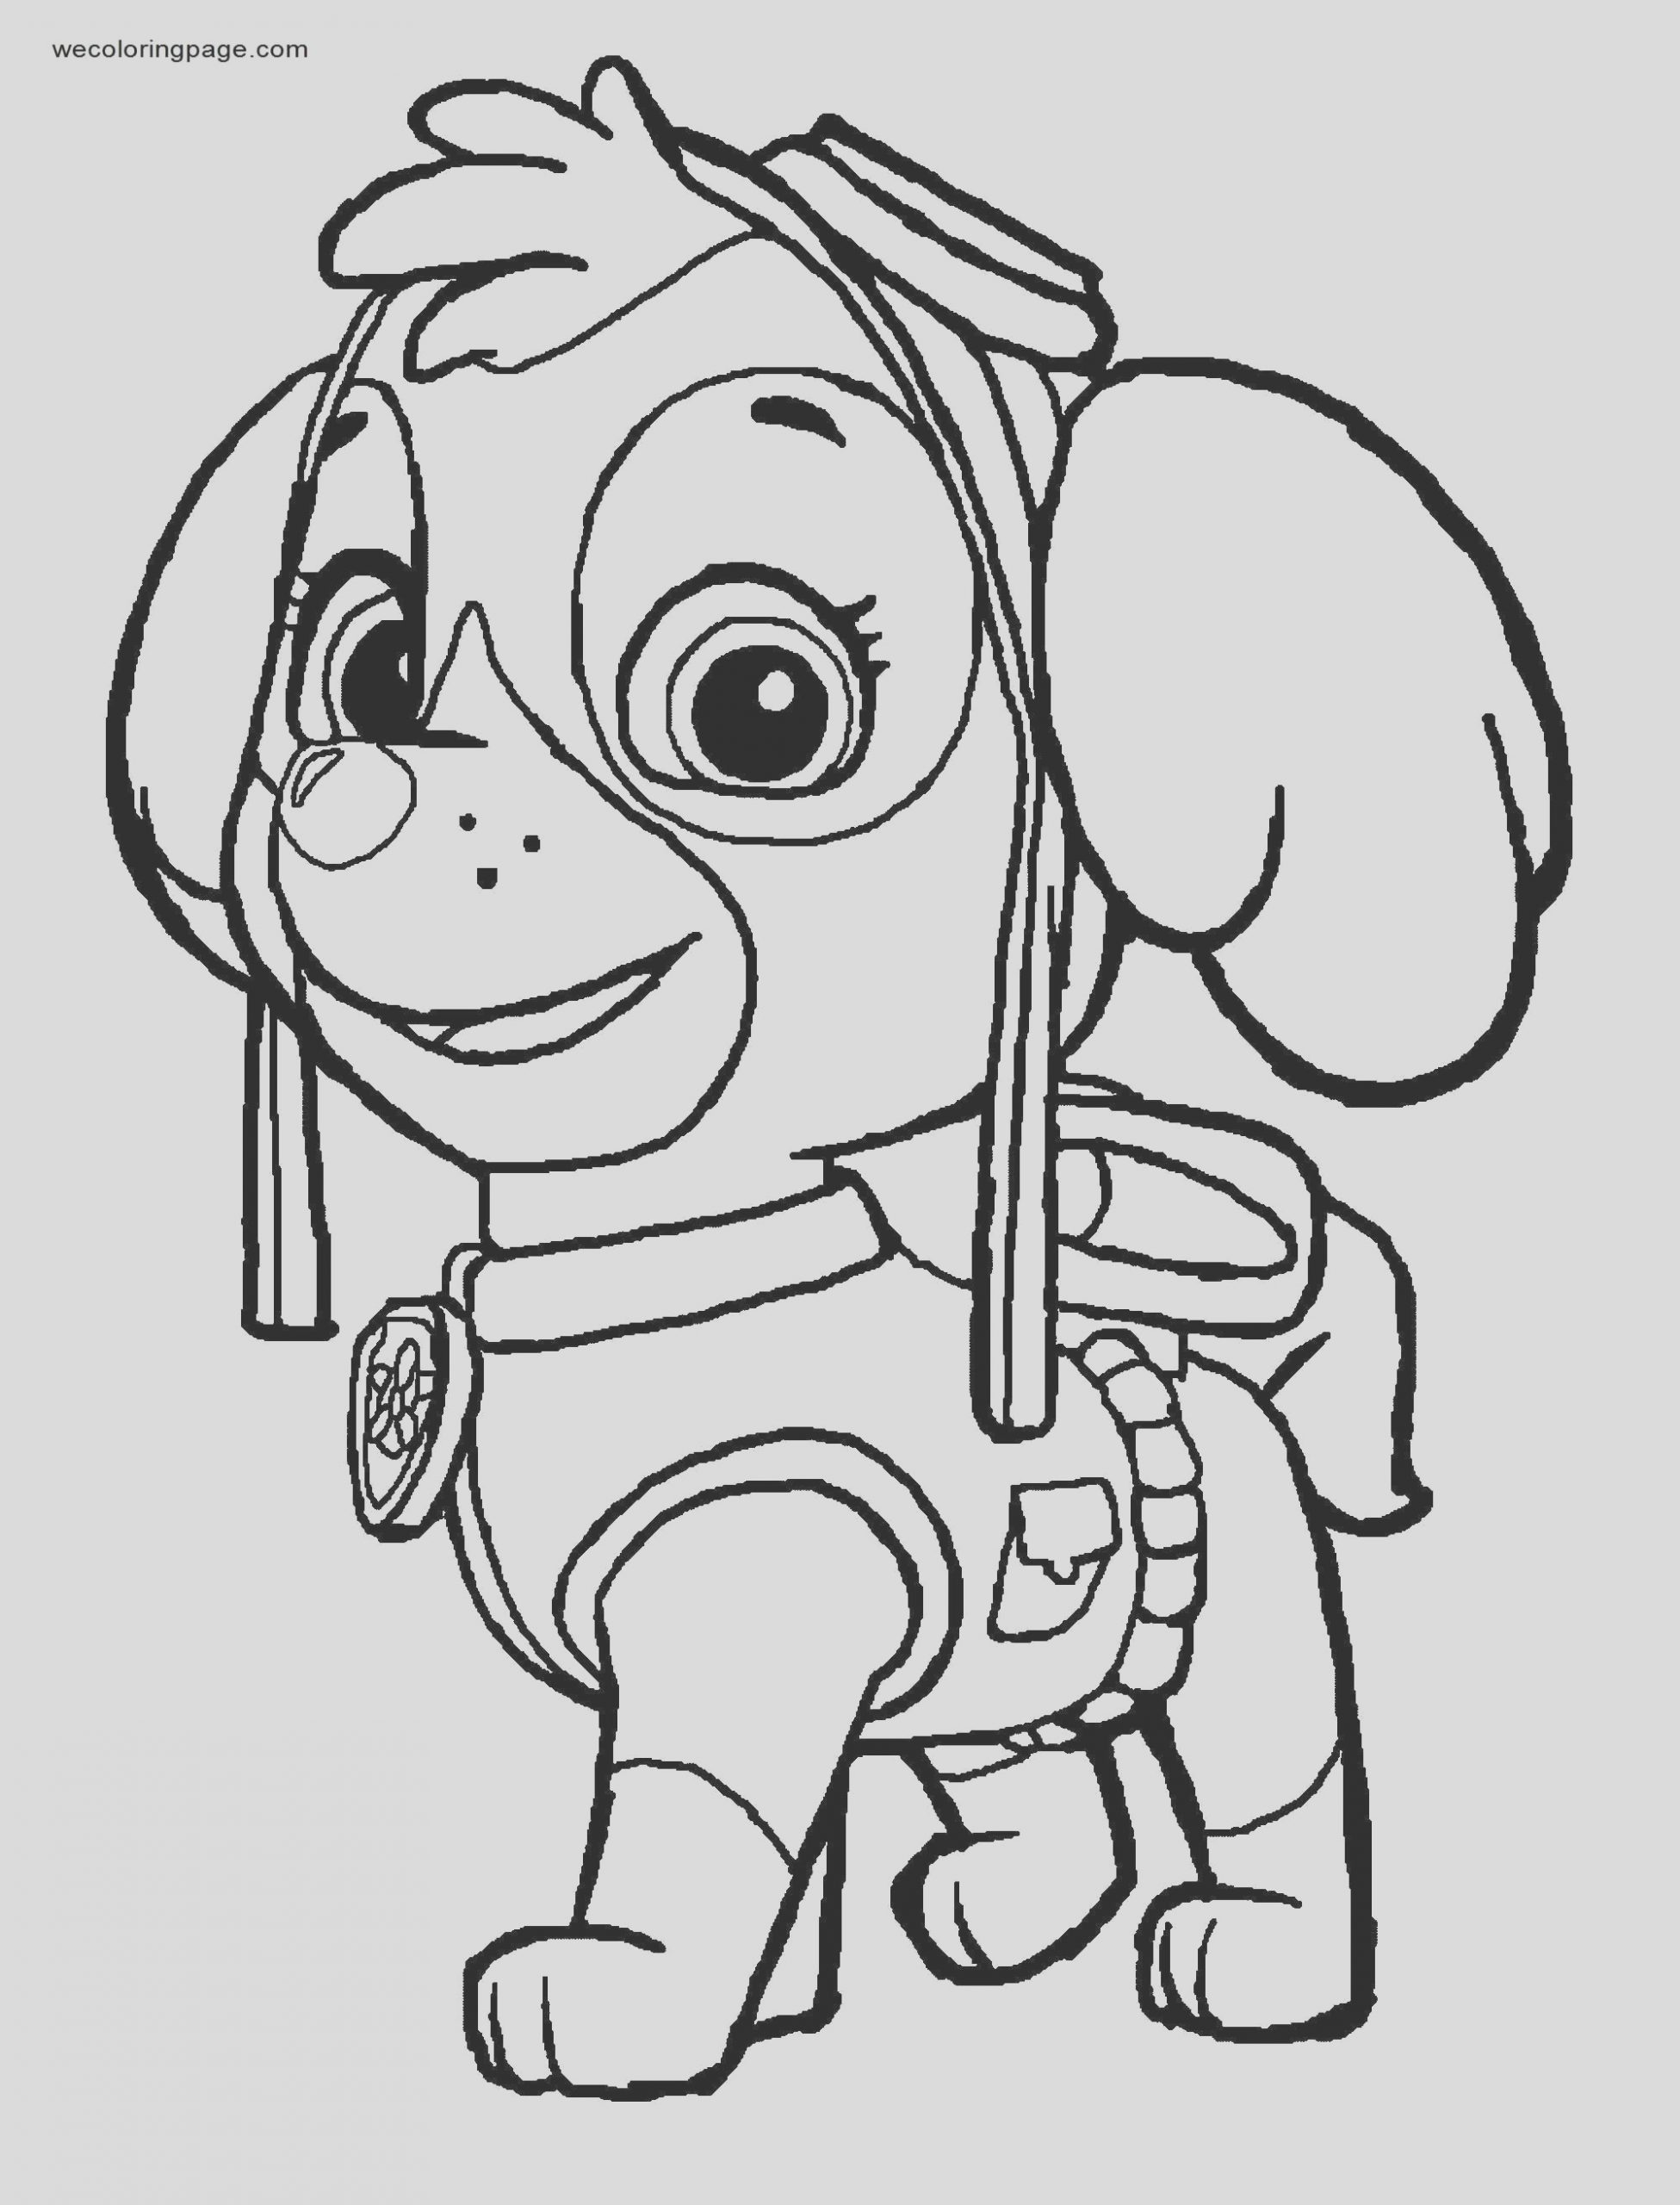 skye aviation pup paw patrol coloring page